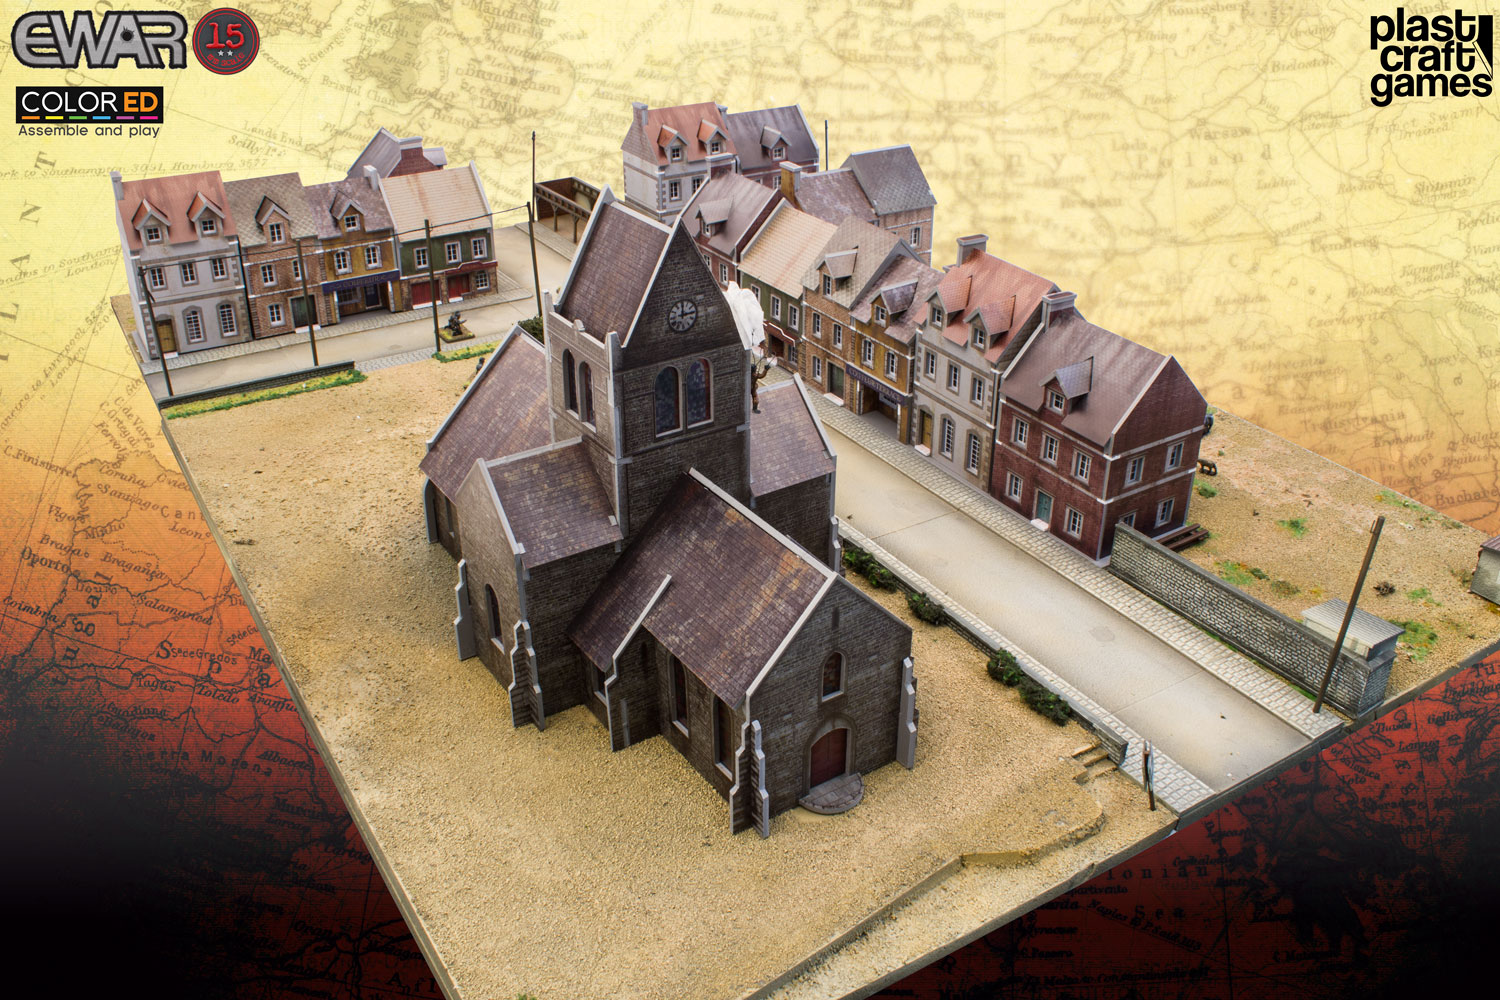 PlastCraft Go 15mm With Their New World War II Color-ED